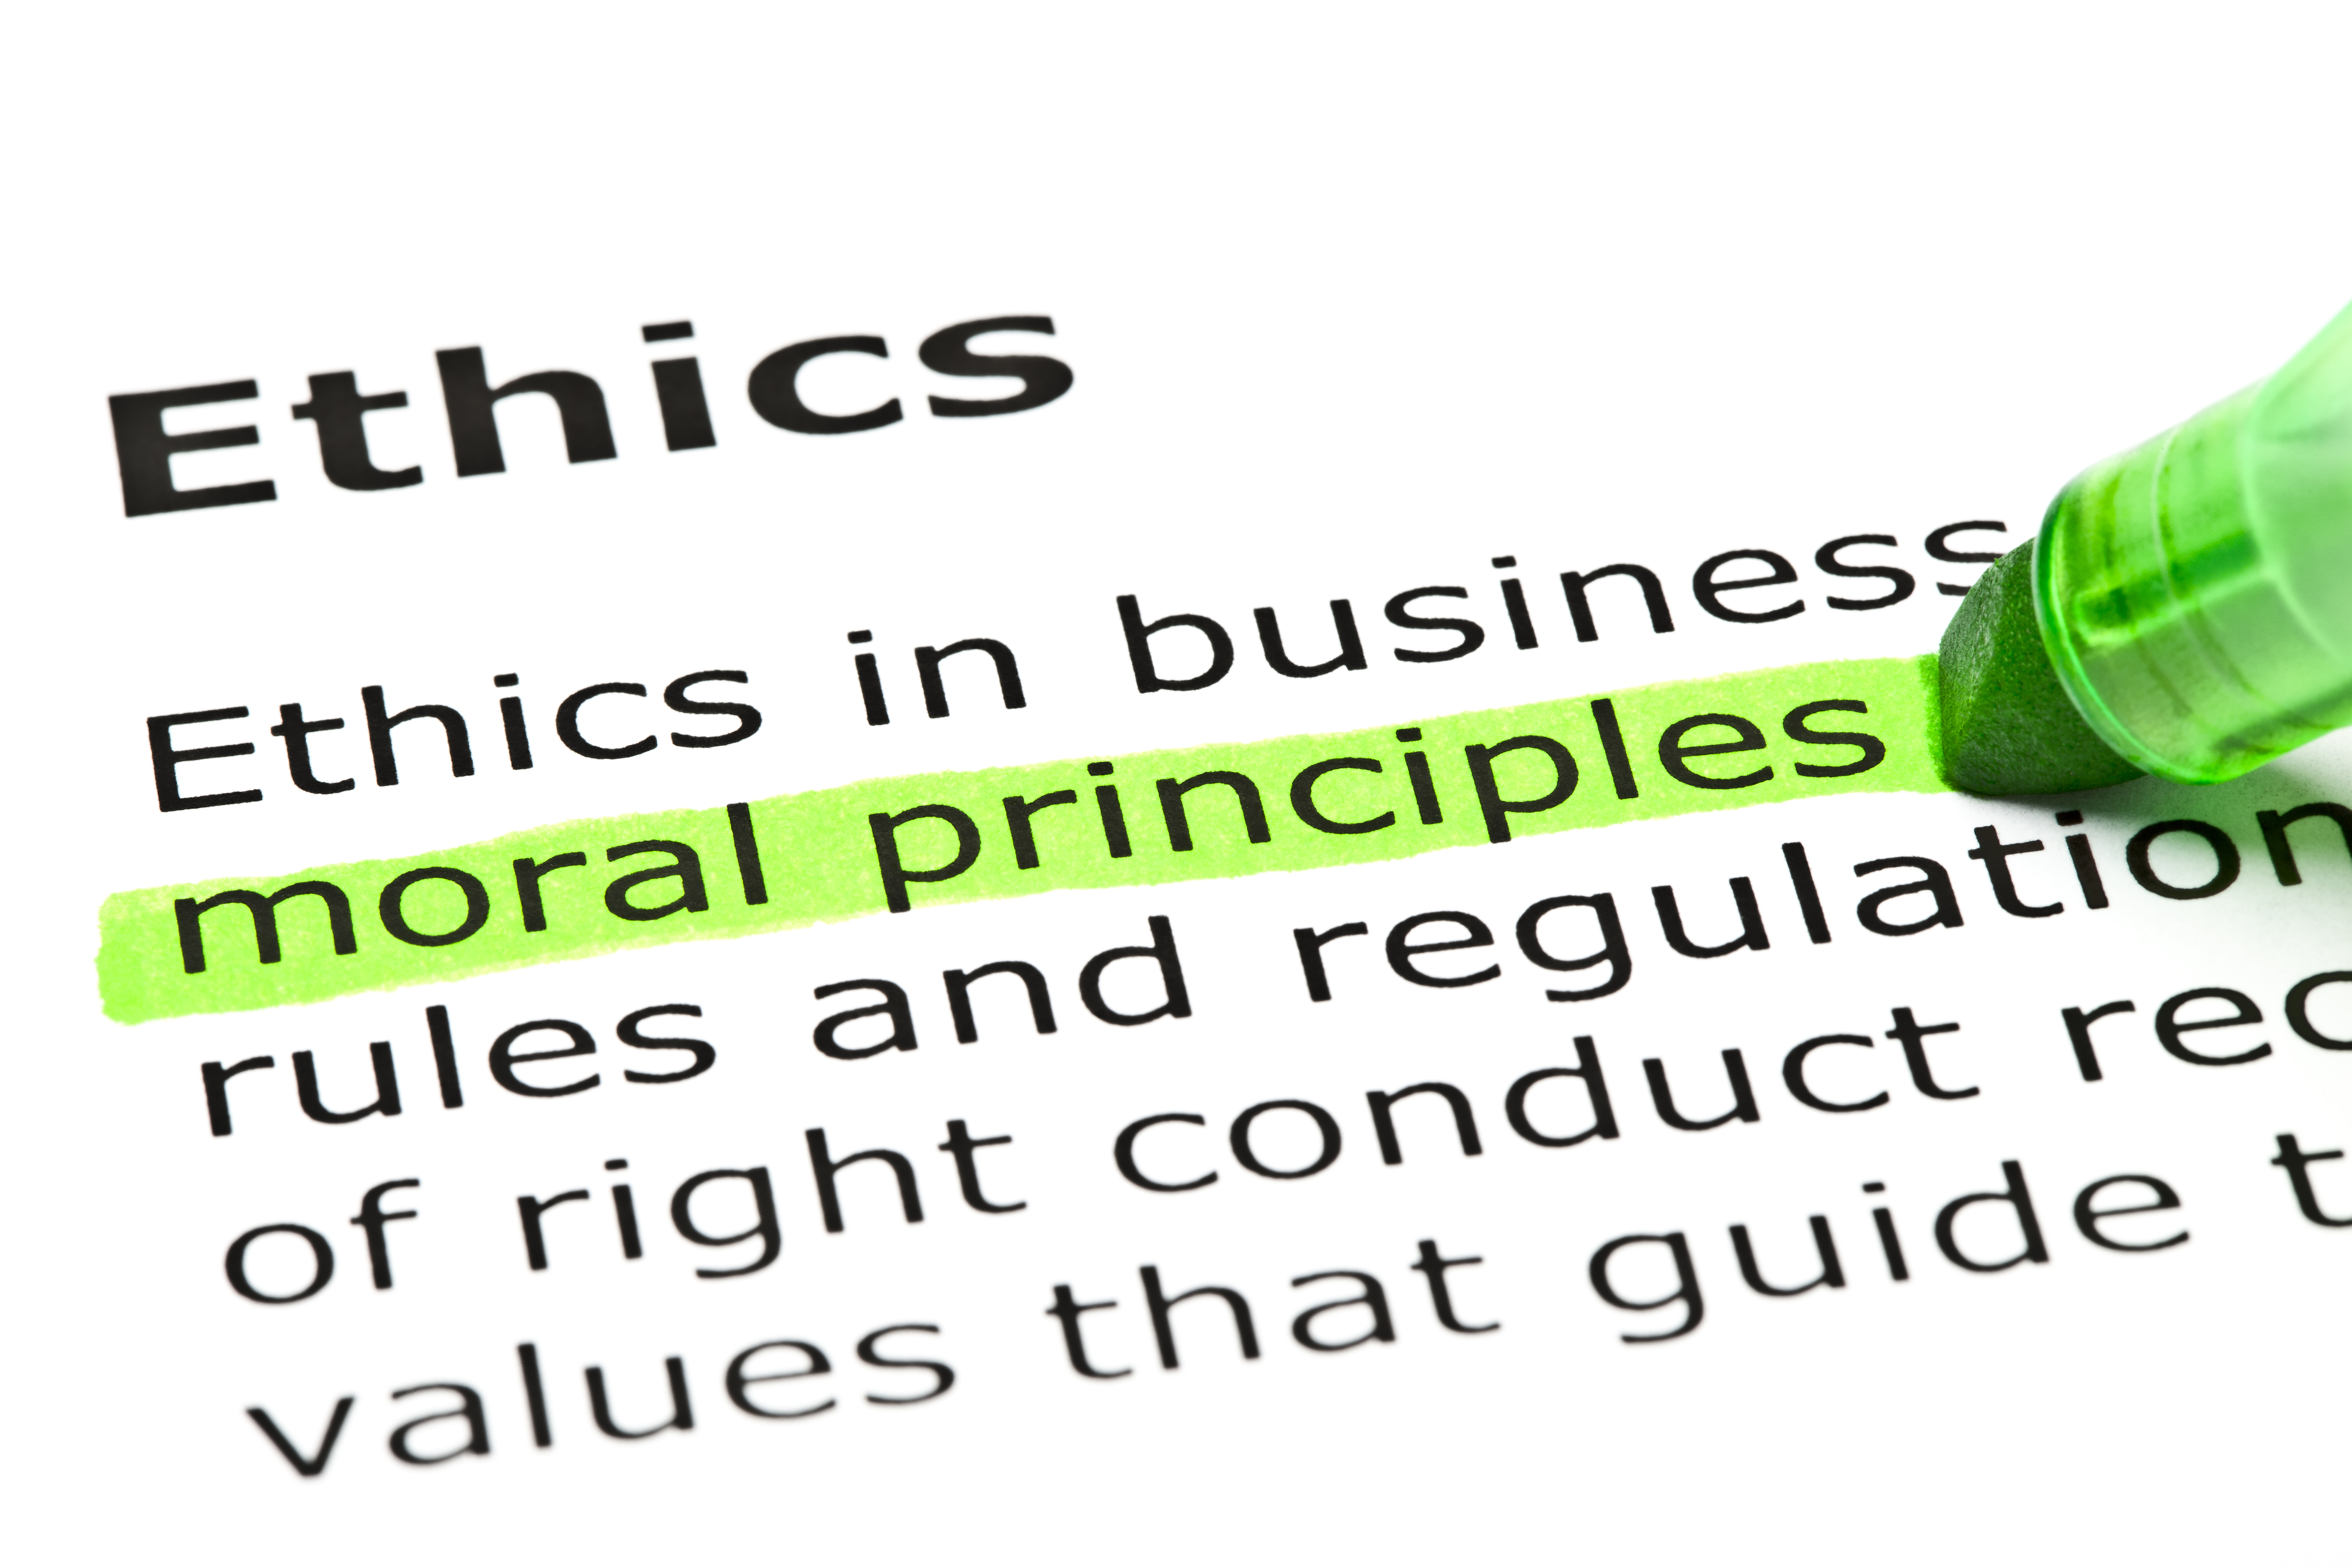 business and ethics go hand in hand pdf